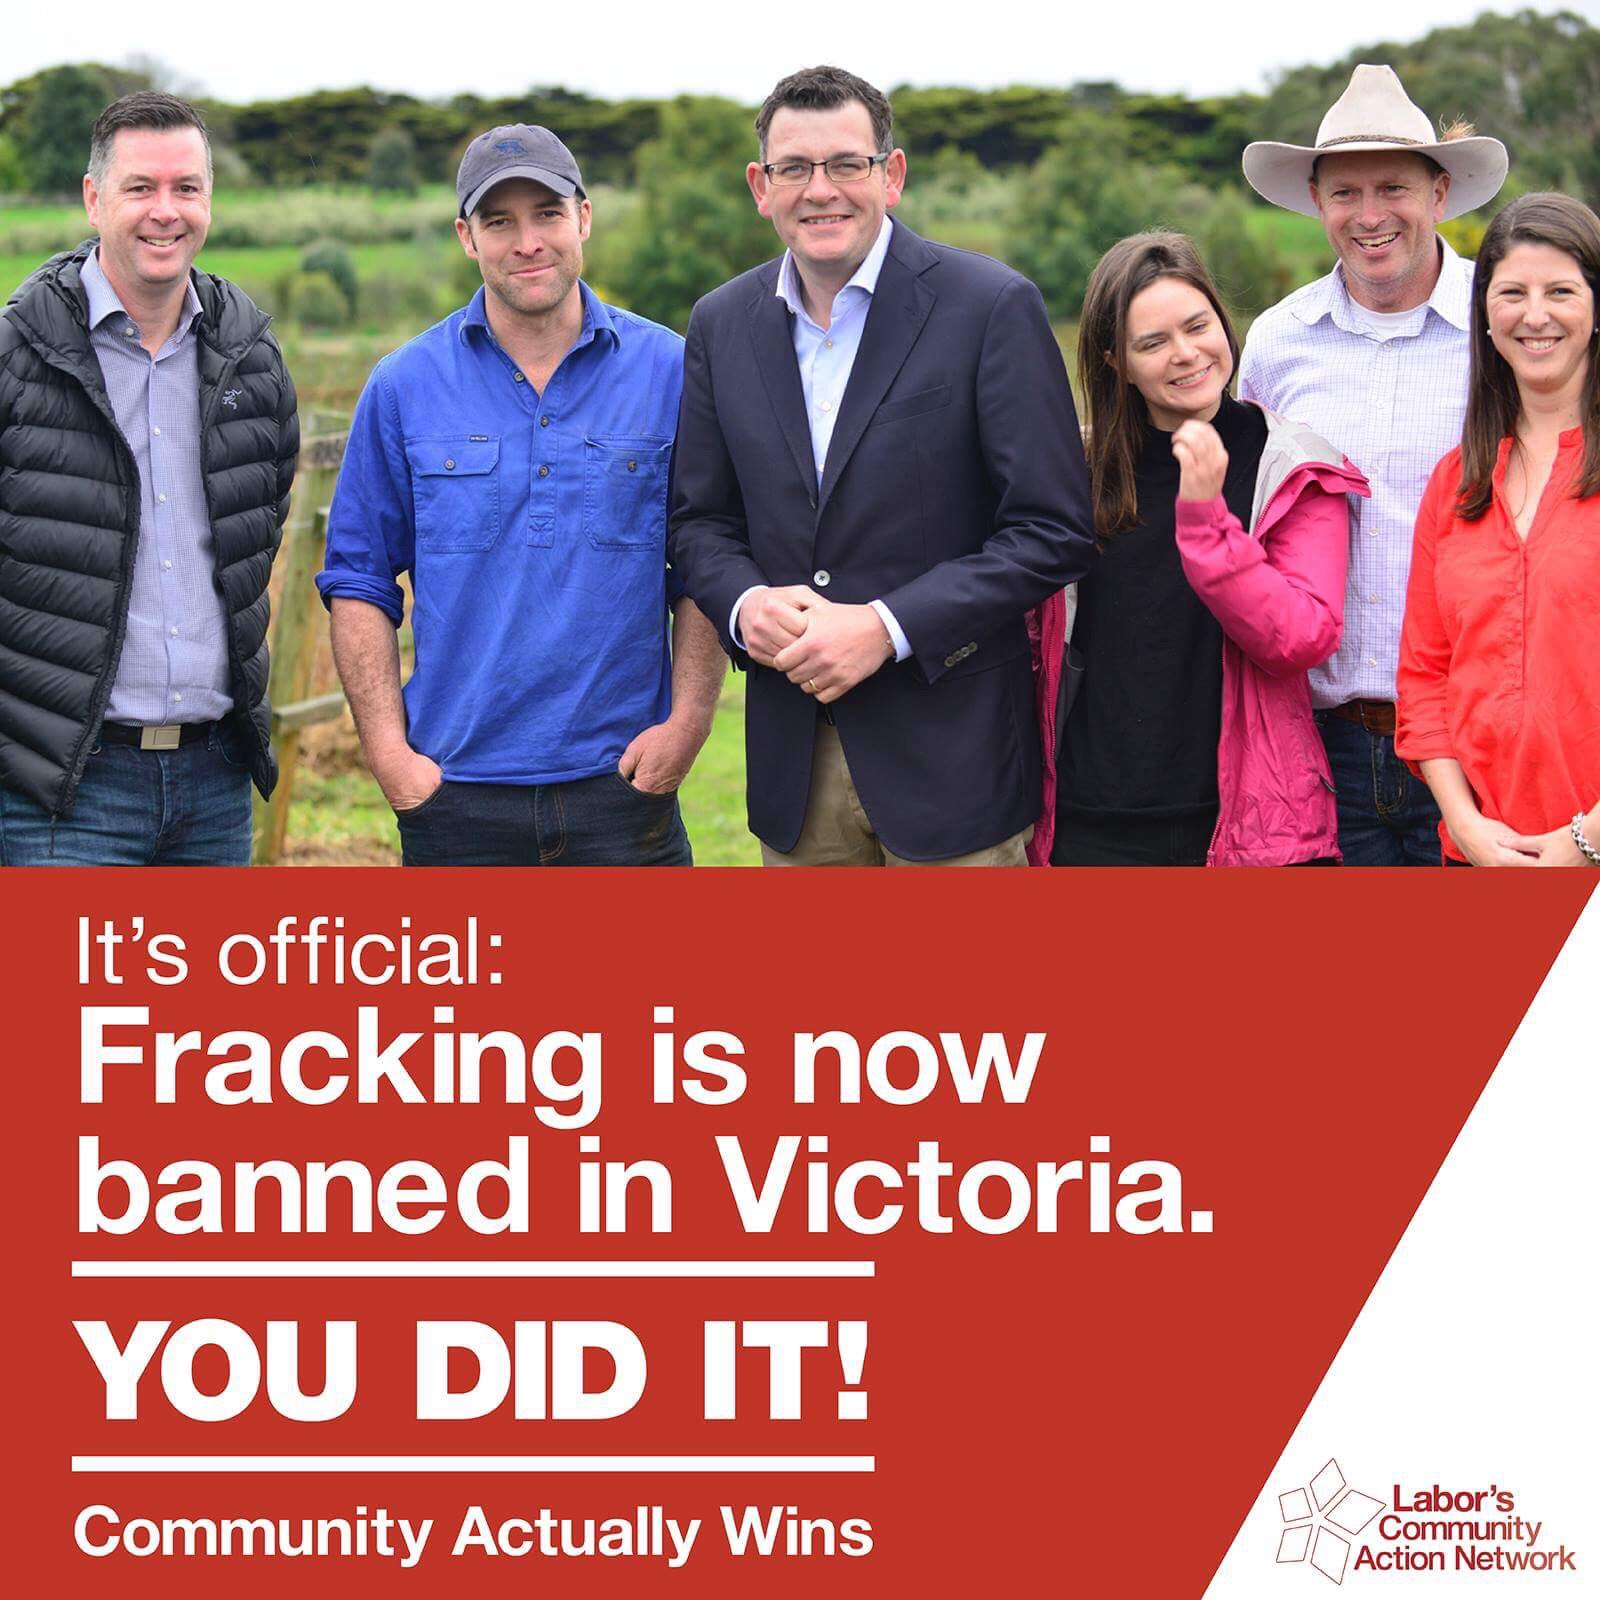 You did it! Fracking Banned in Victoria #thisislabor https://t.co/dqSM6v2Rlj